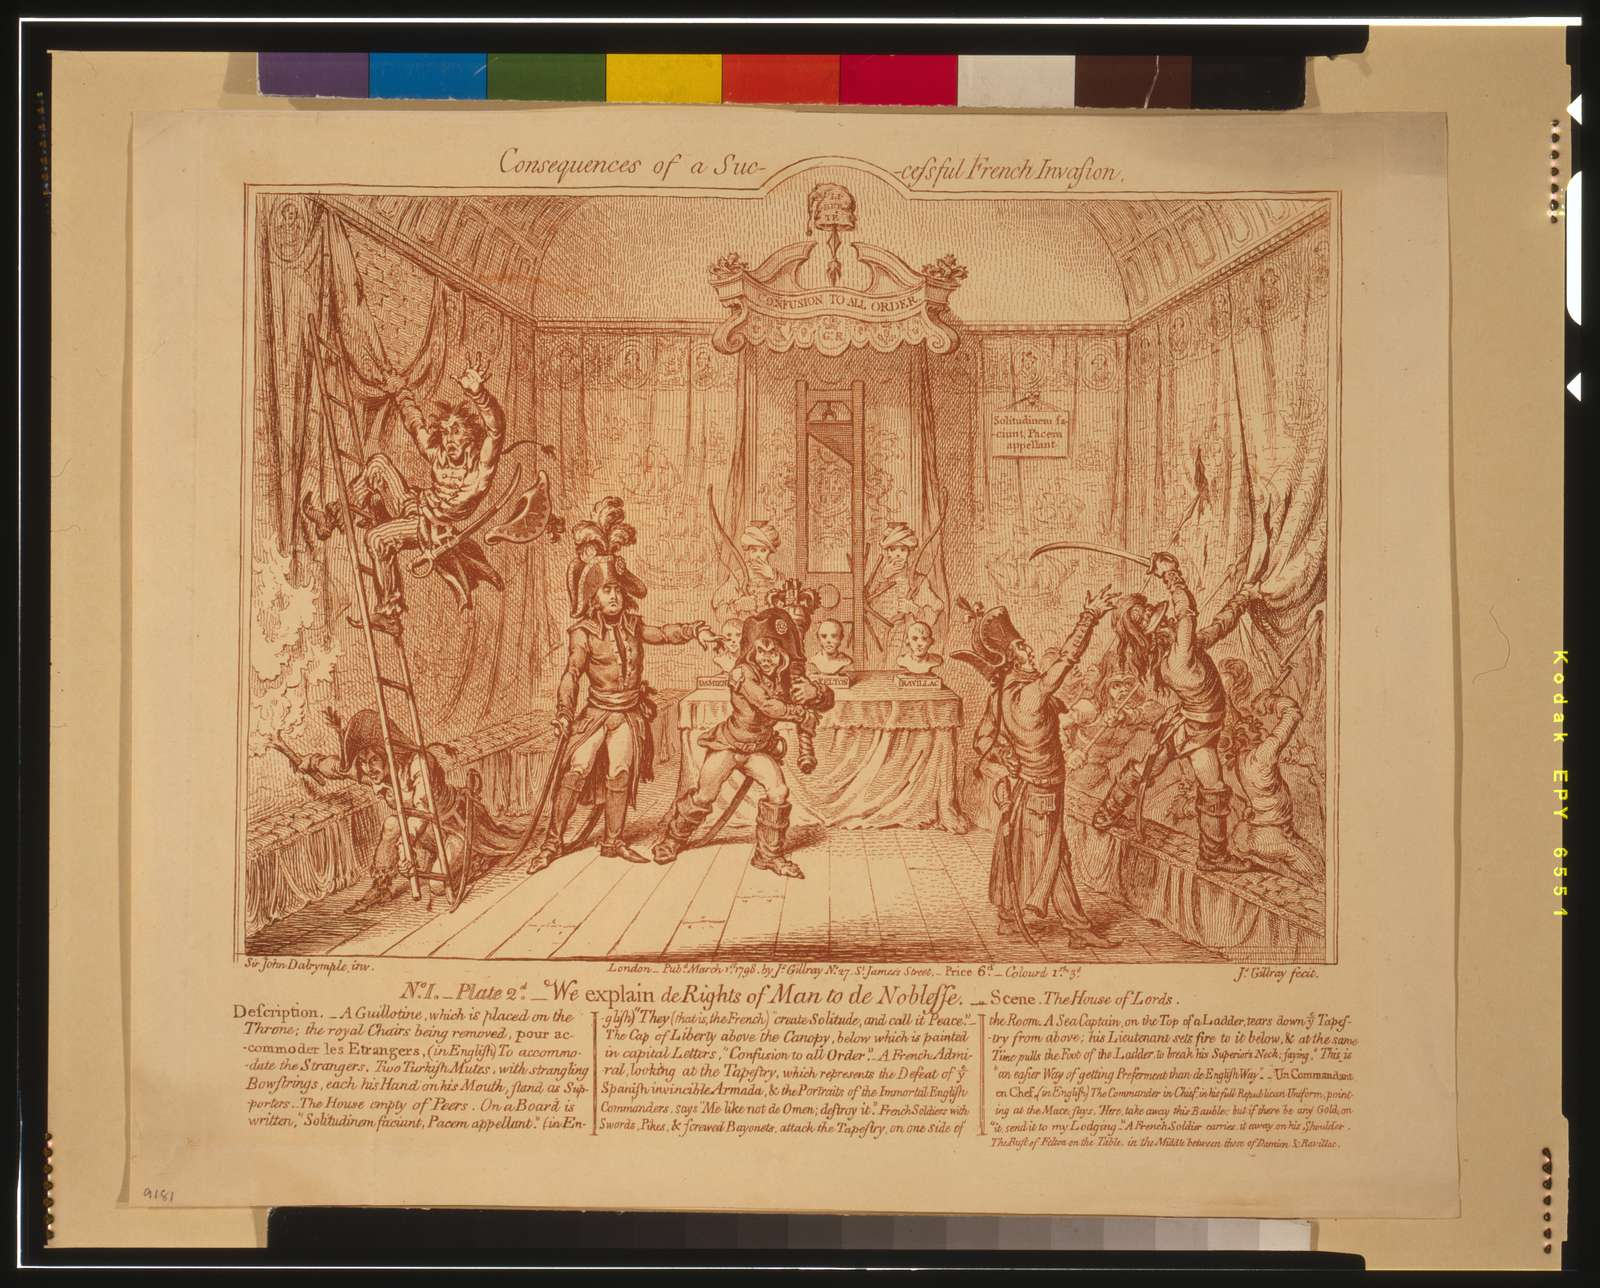 Consequences of a successful French invasion / Sir John Dalrymple, inv.; Js Gillray, fecit.